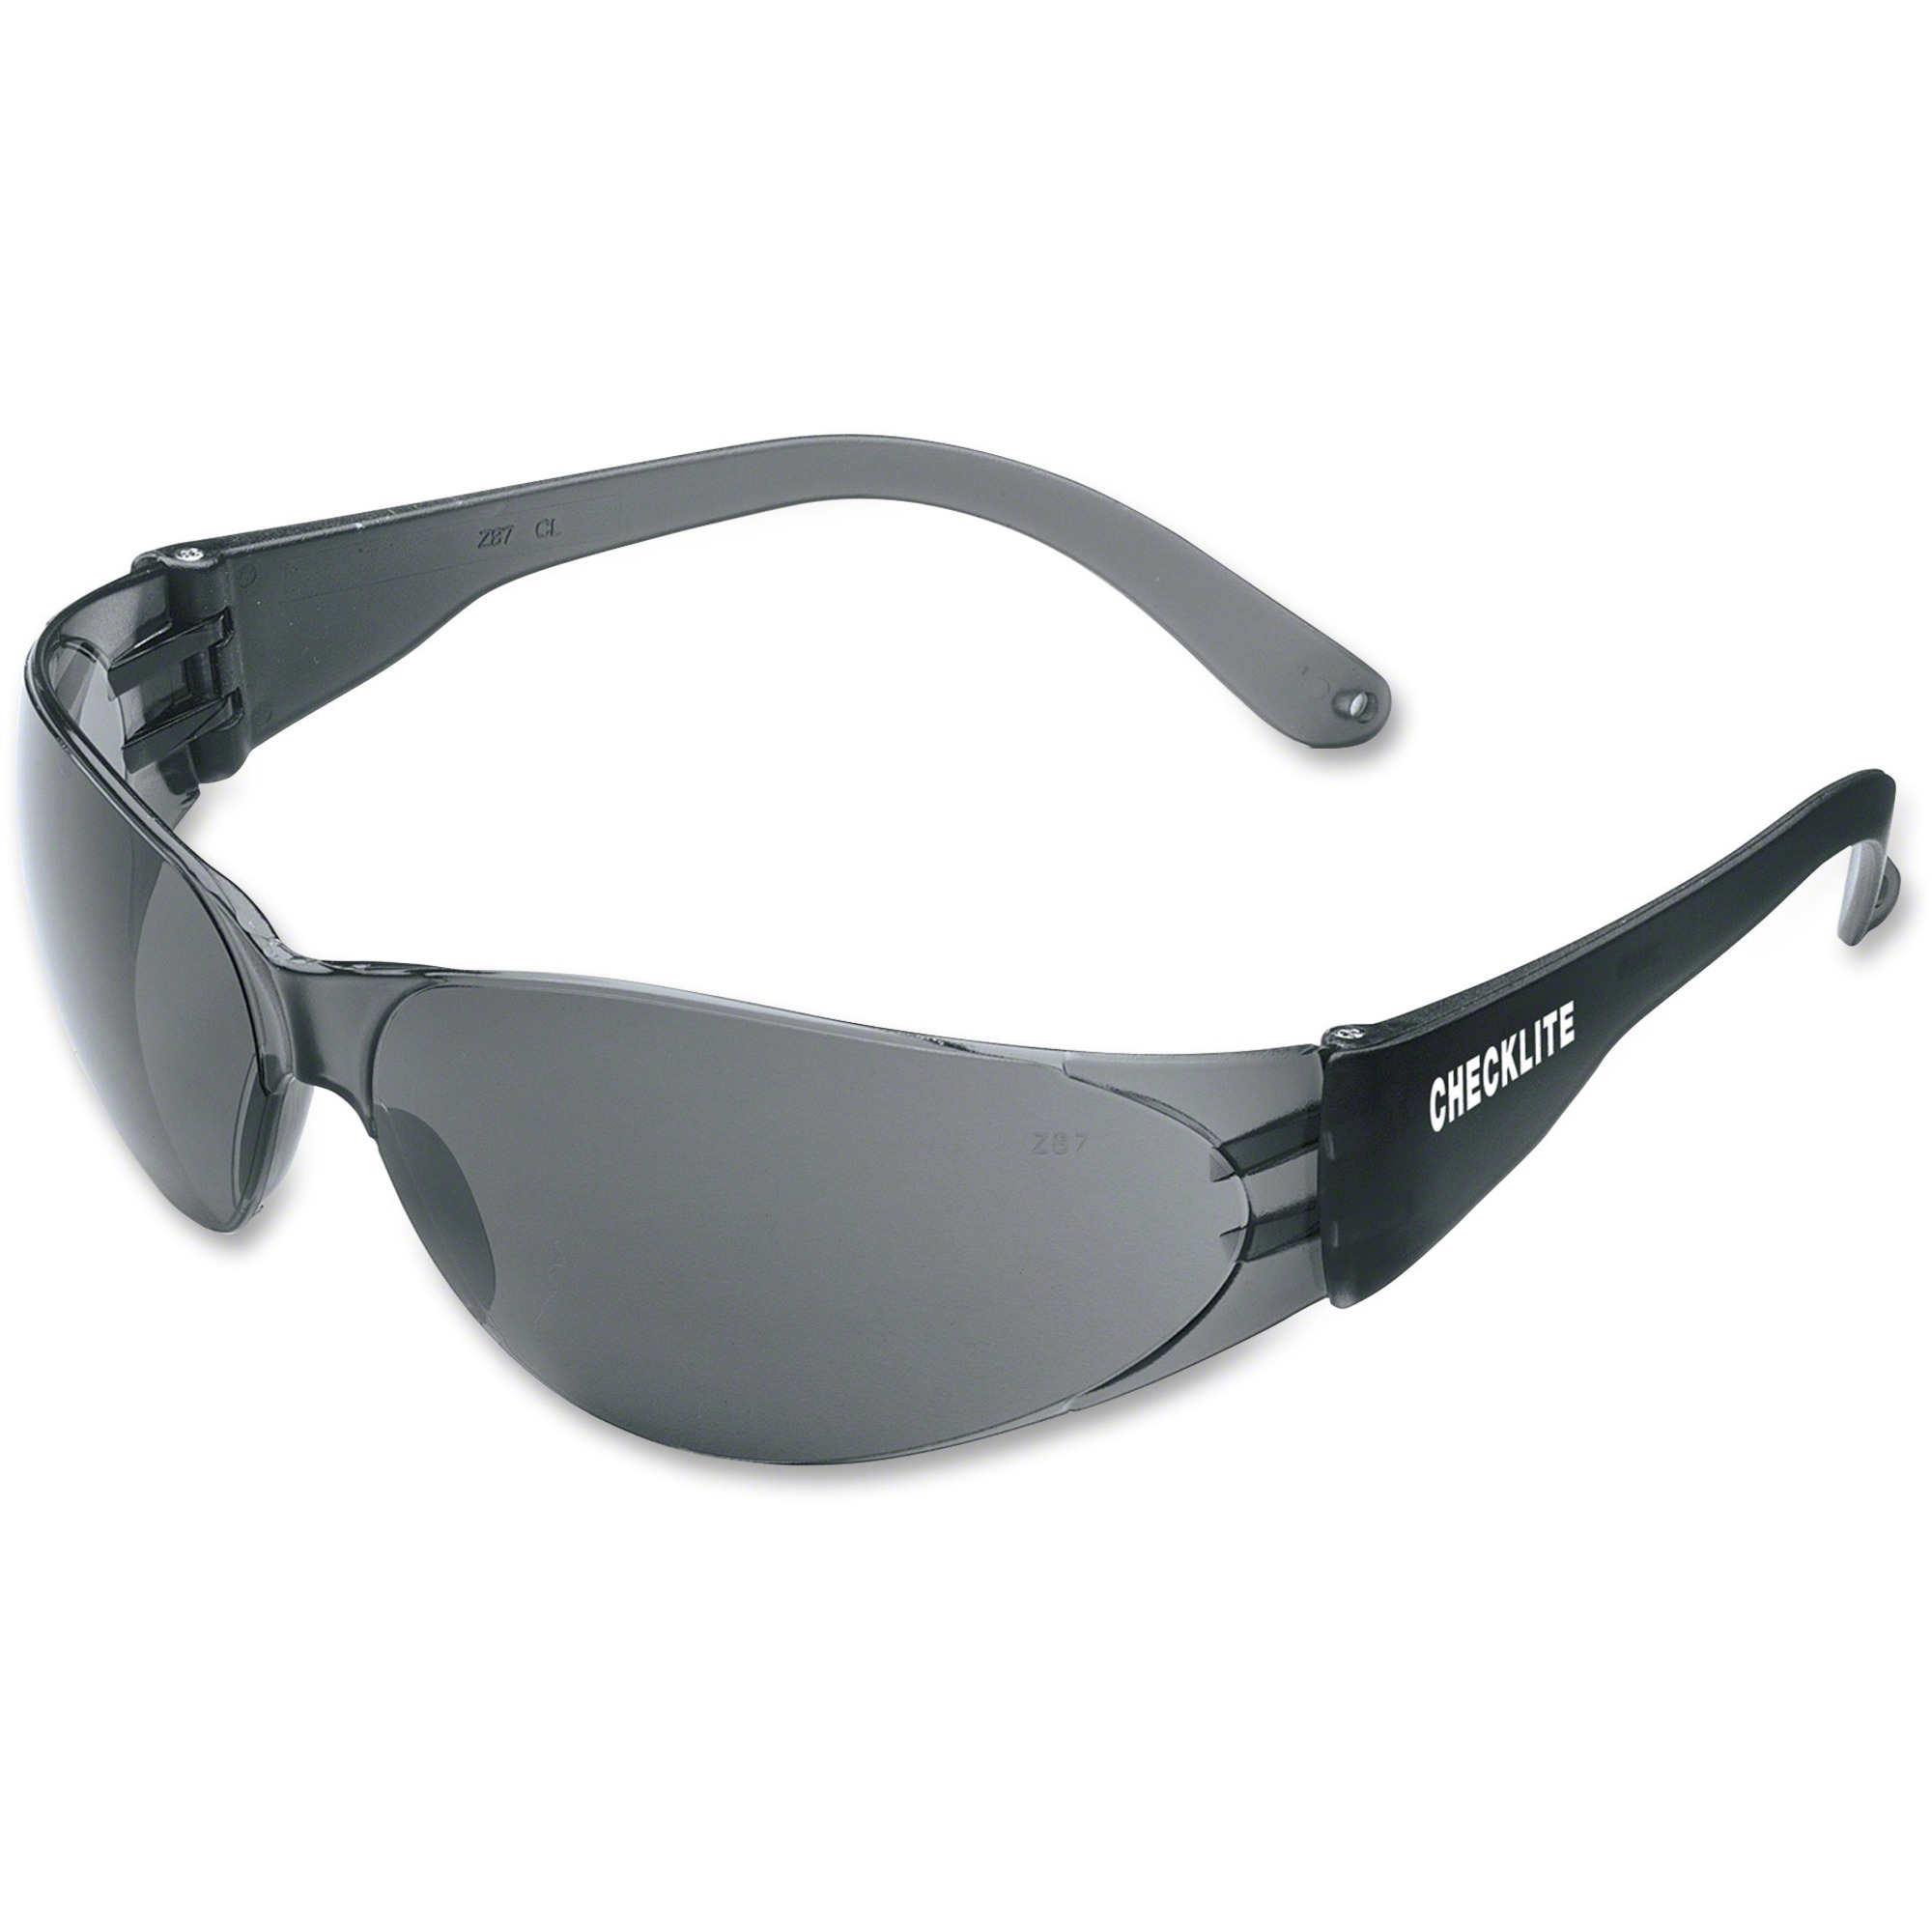 Mcr Safety Crews Checklite Gray Lens Safety Glasses - Comfortable, Scratch Resistant, Lightweight, Adjustable Temple - Ultraviolet Protection - Polycarbonate Lens, Polycarbonate Frame - Gray, Smoke - 1 Each